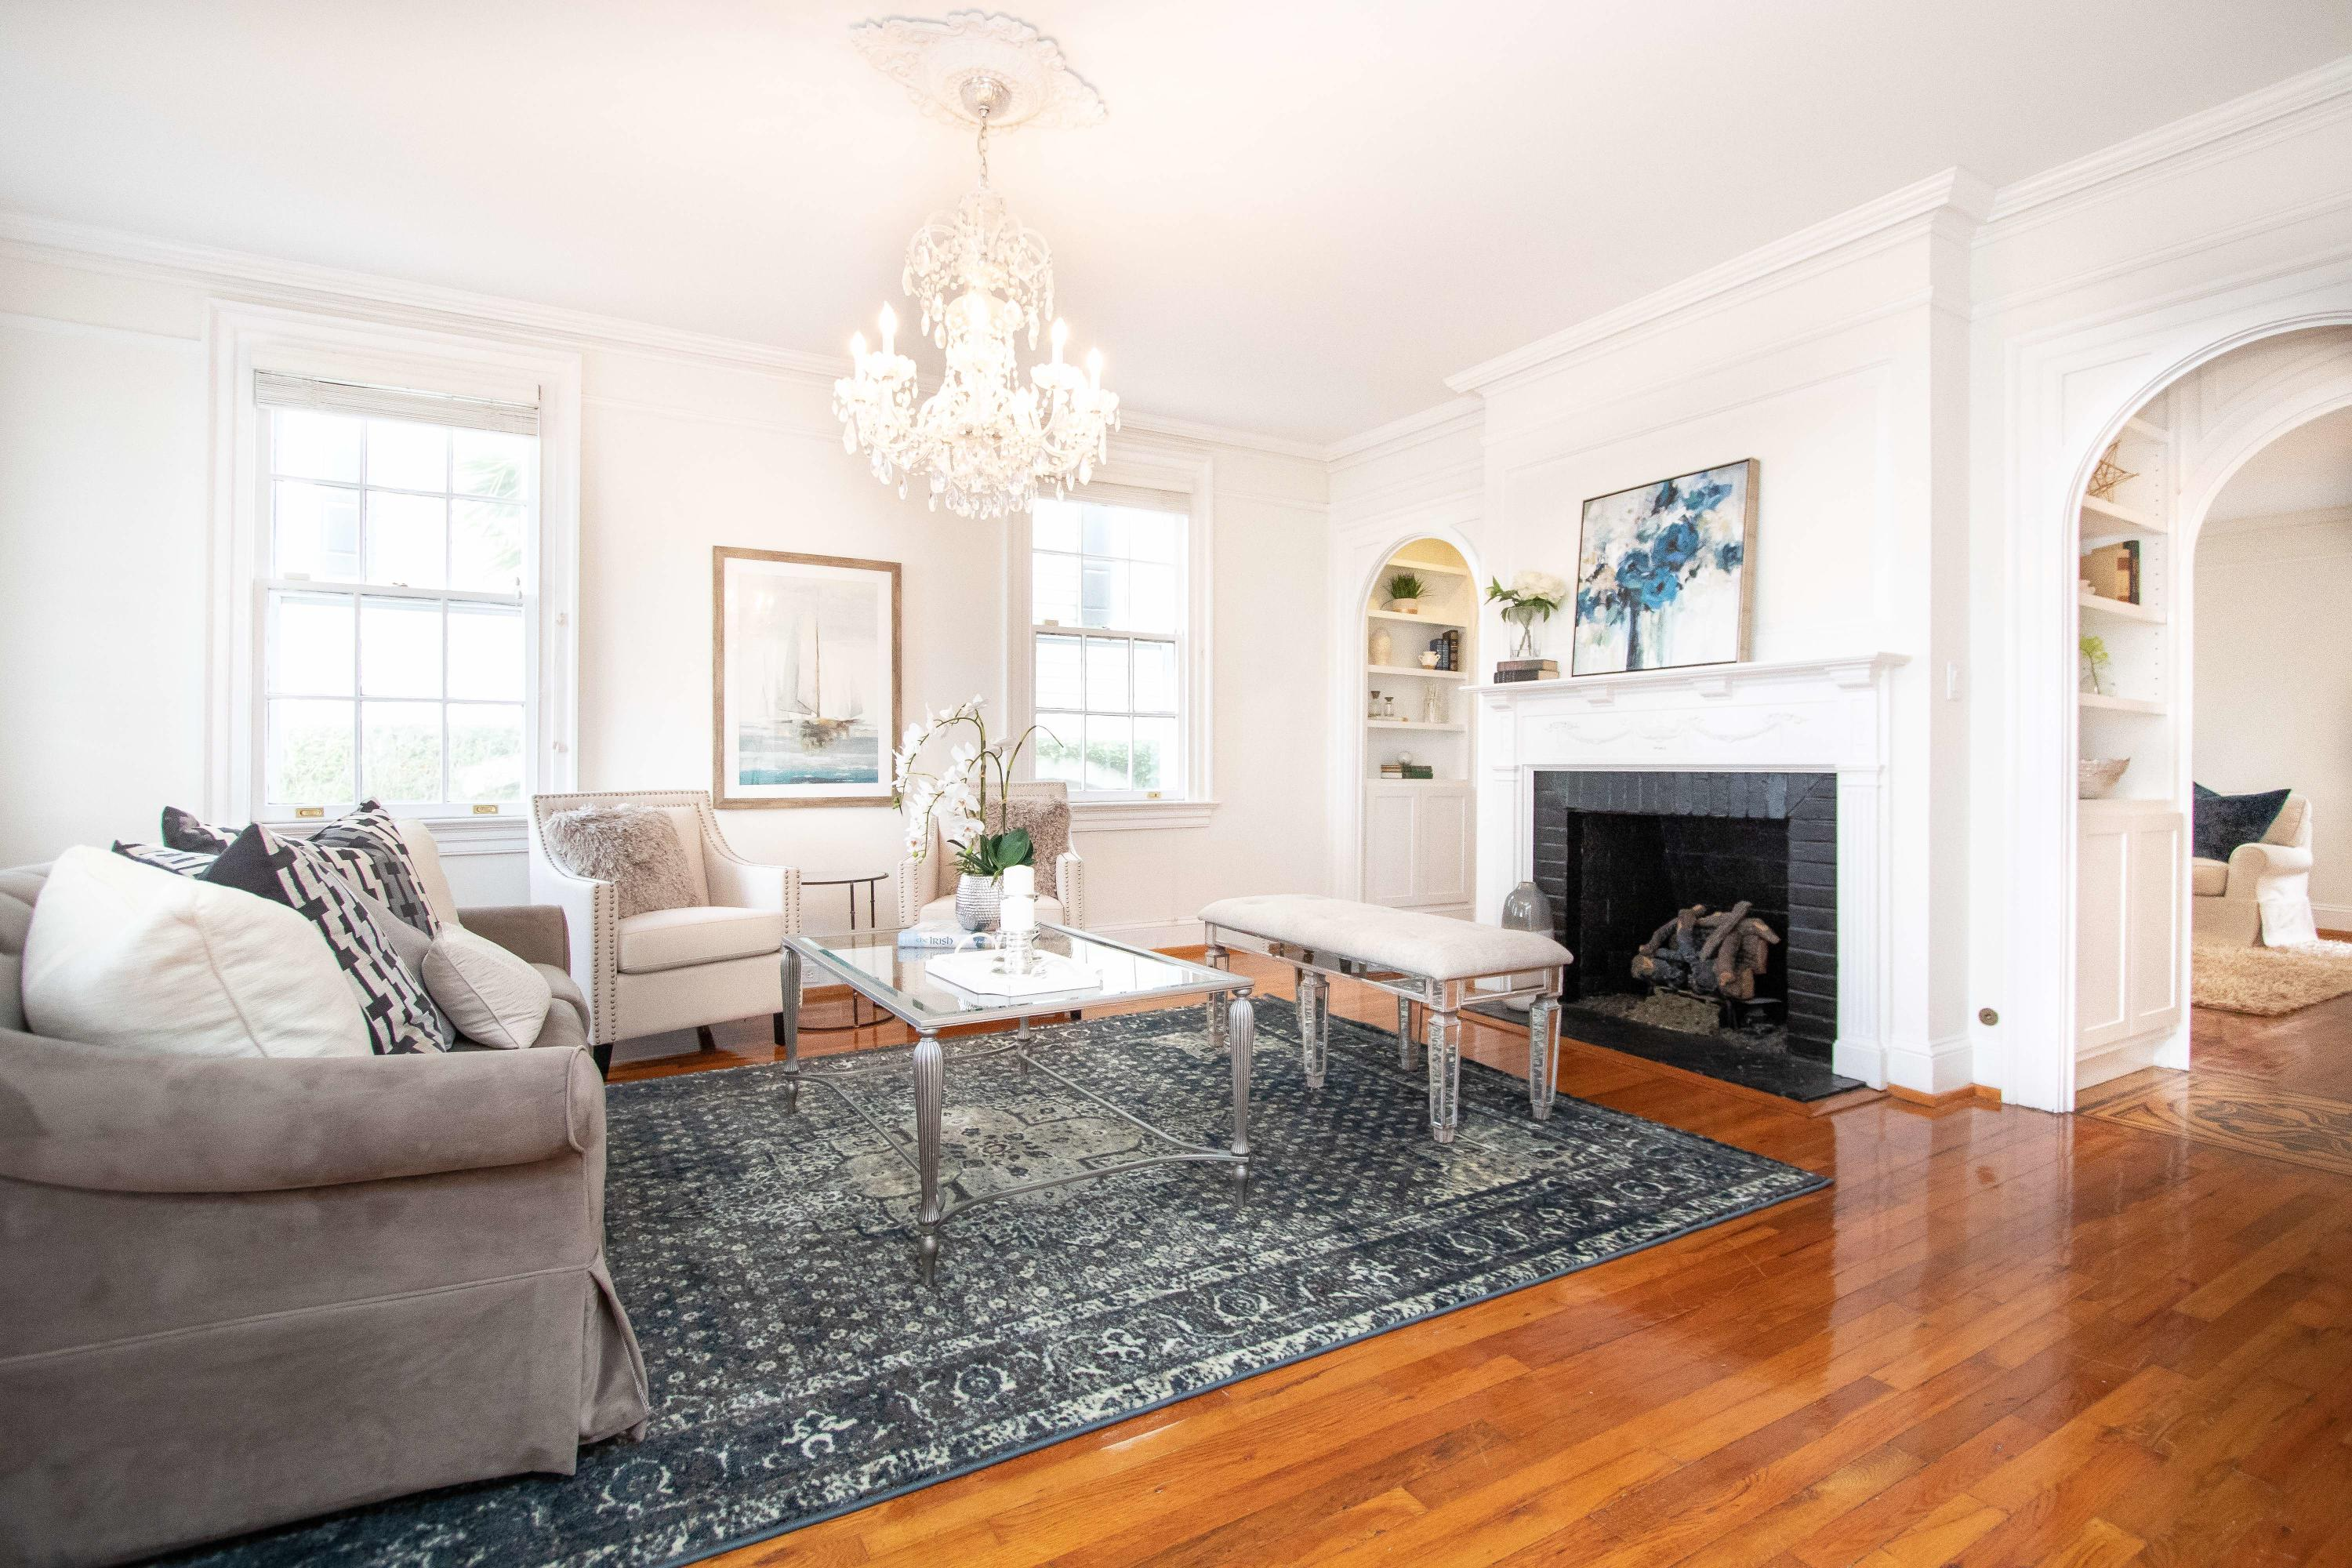 South of Broad Homes For Sale - 104 Murray, Charleston, SC - 33